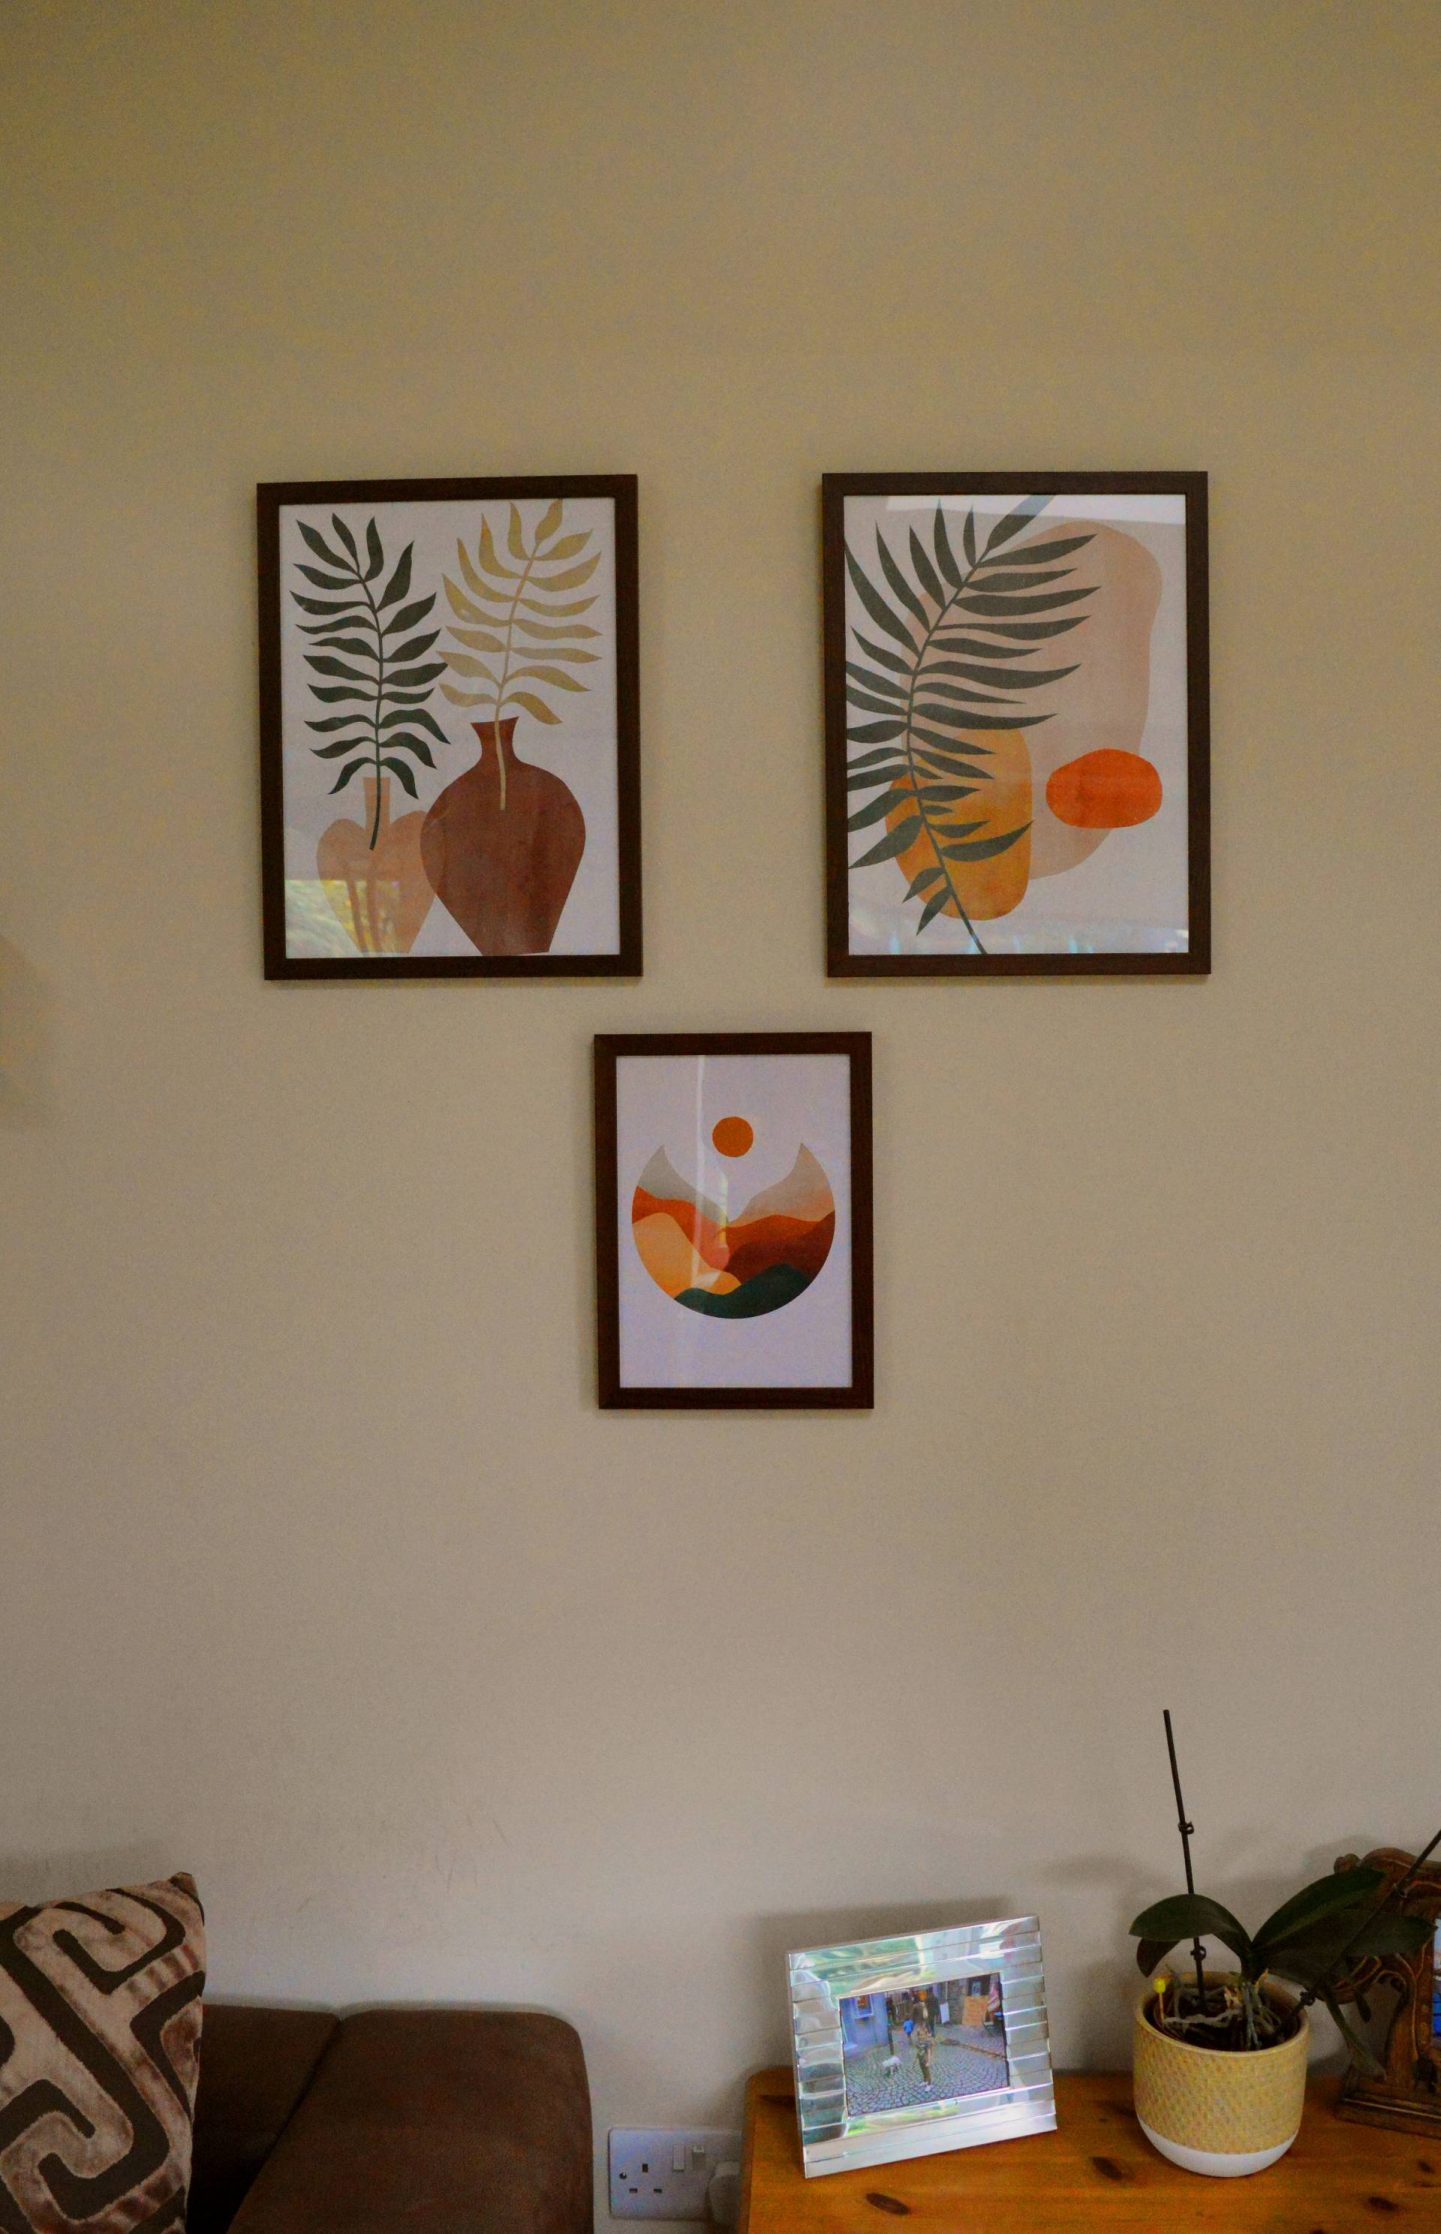 Budget-Friendly Wall Art to Transform Your Home, Poster Store abstract plant prints